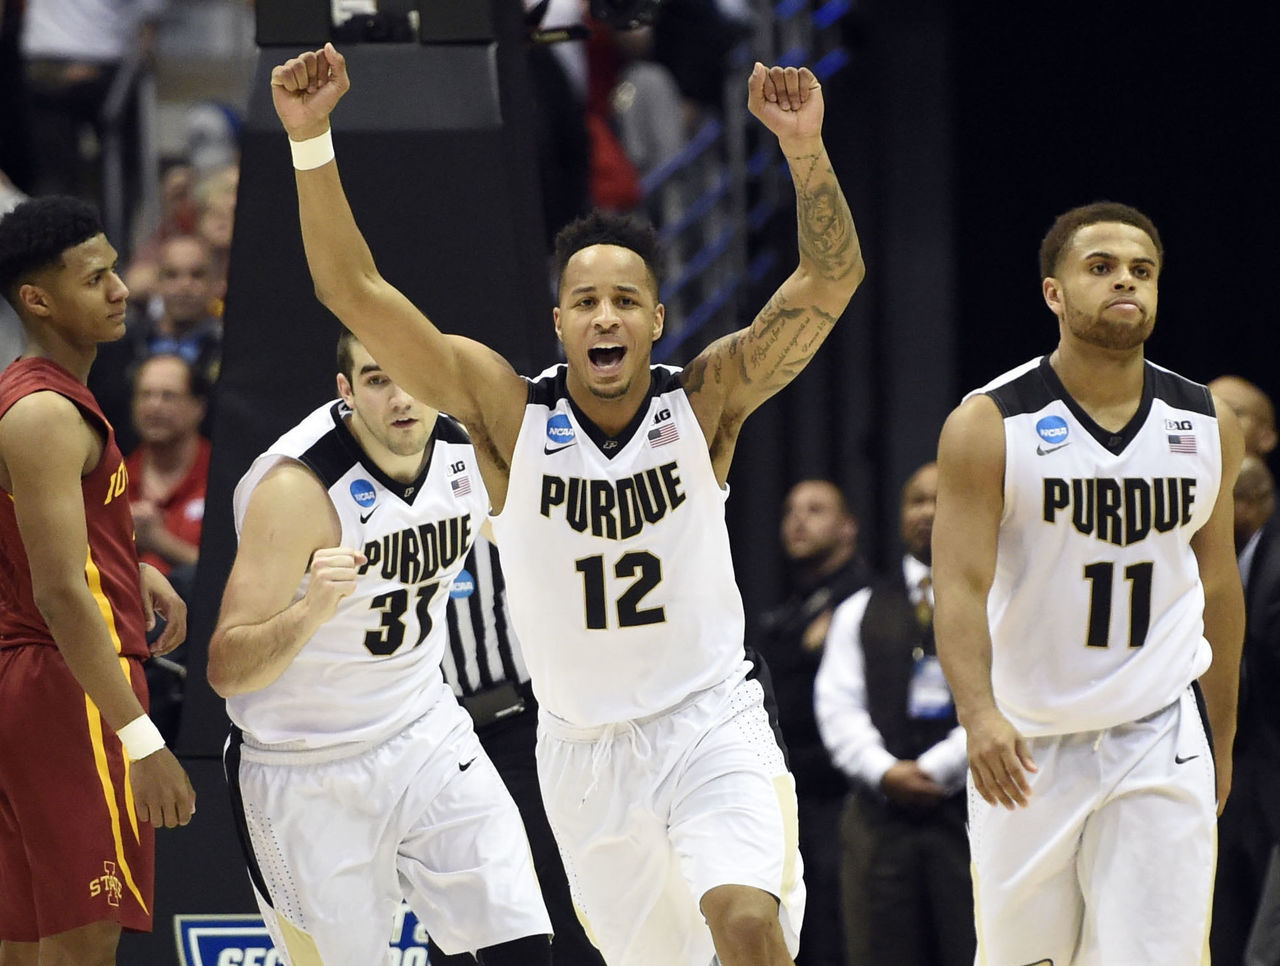 Cropped 2017 03 19t040451z 883997048 nocid rtrmadp 3 ncaa basketball ncaa tournament second round purdue vs iowa state